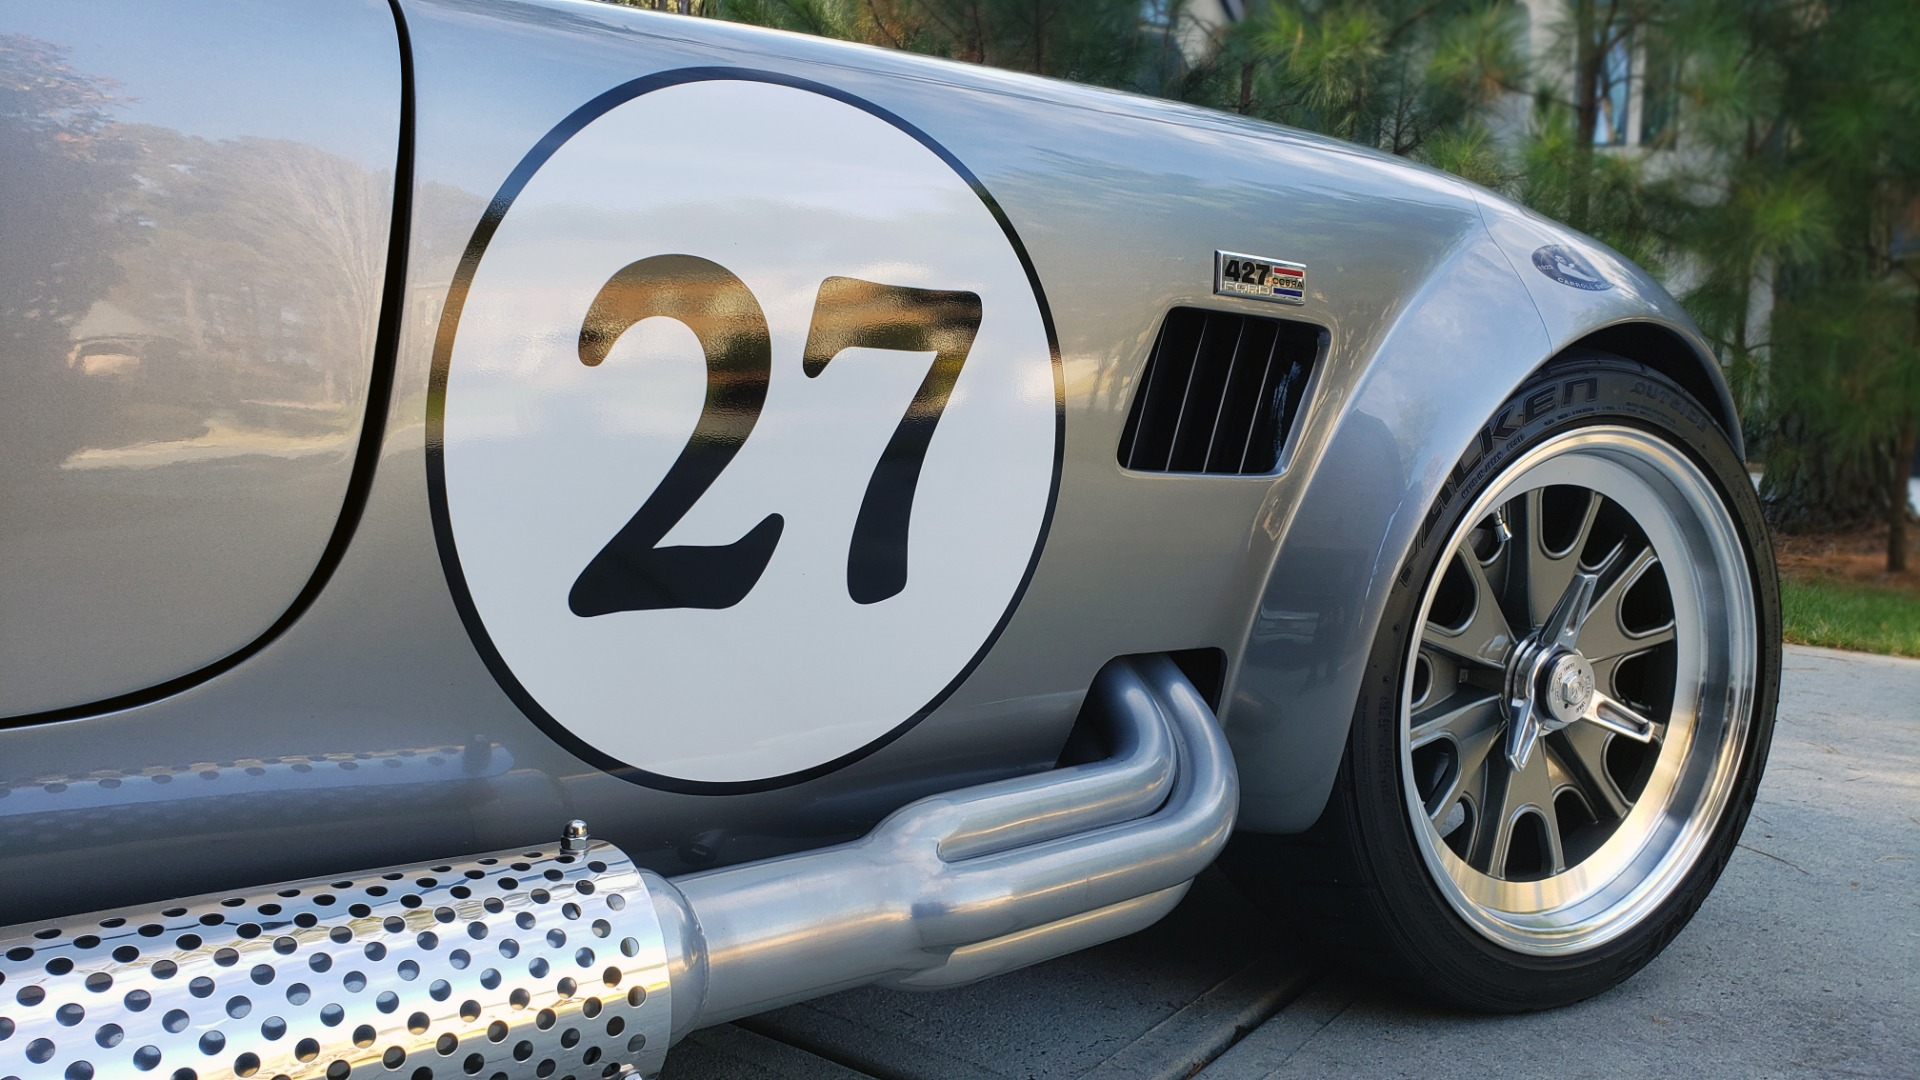 Used 1965 Ford COBRA 427 ROADSTER BY BRACKDRAFT RACING ROUSH 553HP V8 / TREMEC 6-SPD / PWR STRNG for sale $74,999 at Formula Imports in Charlotte NC 28227 15